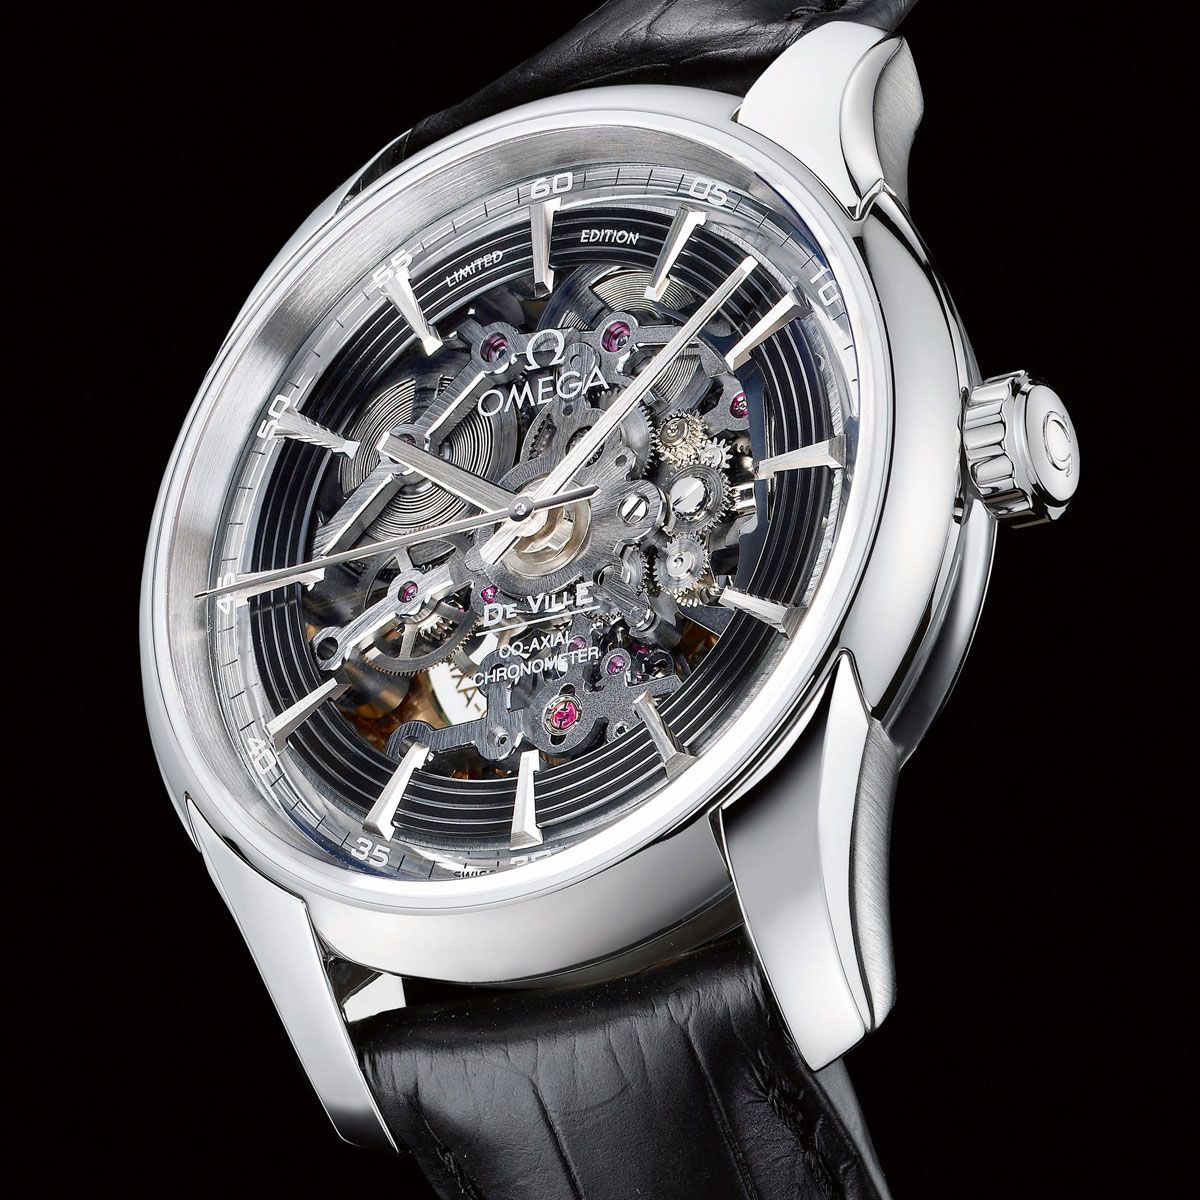 The Watch Quote Photo Omega Hour Vision Co Axial Skeleton Platinum Limited Edition Omega Mens Luxury Accessories Watch Design